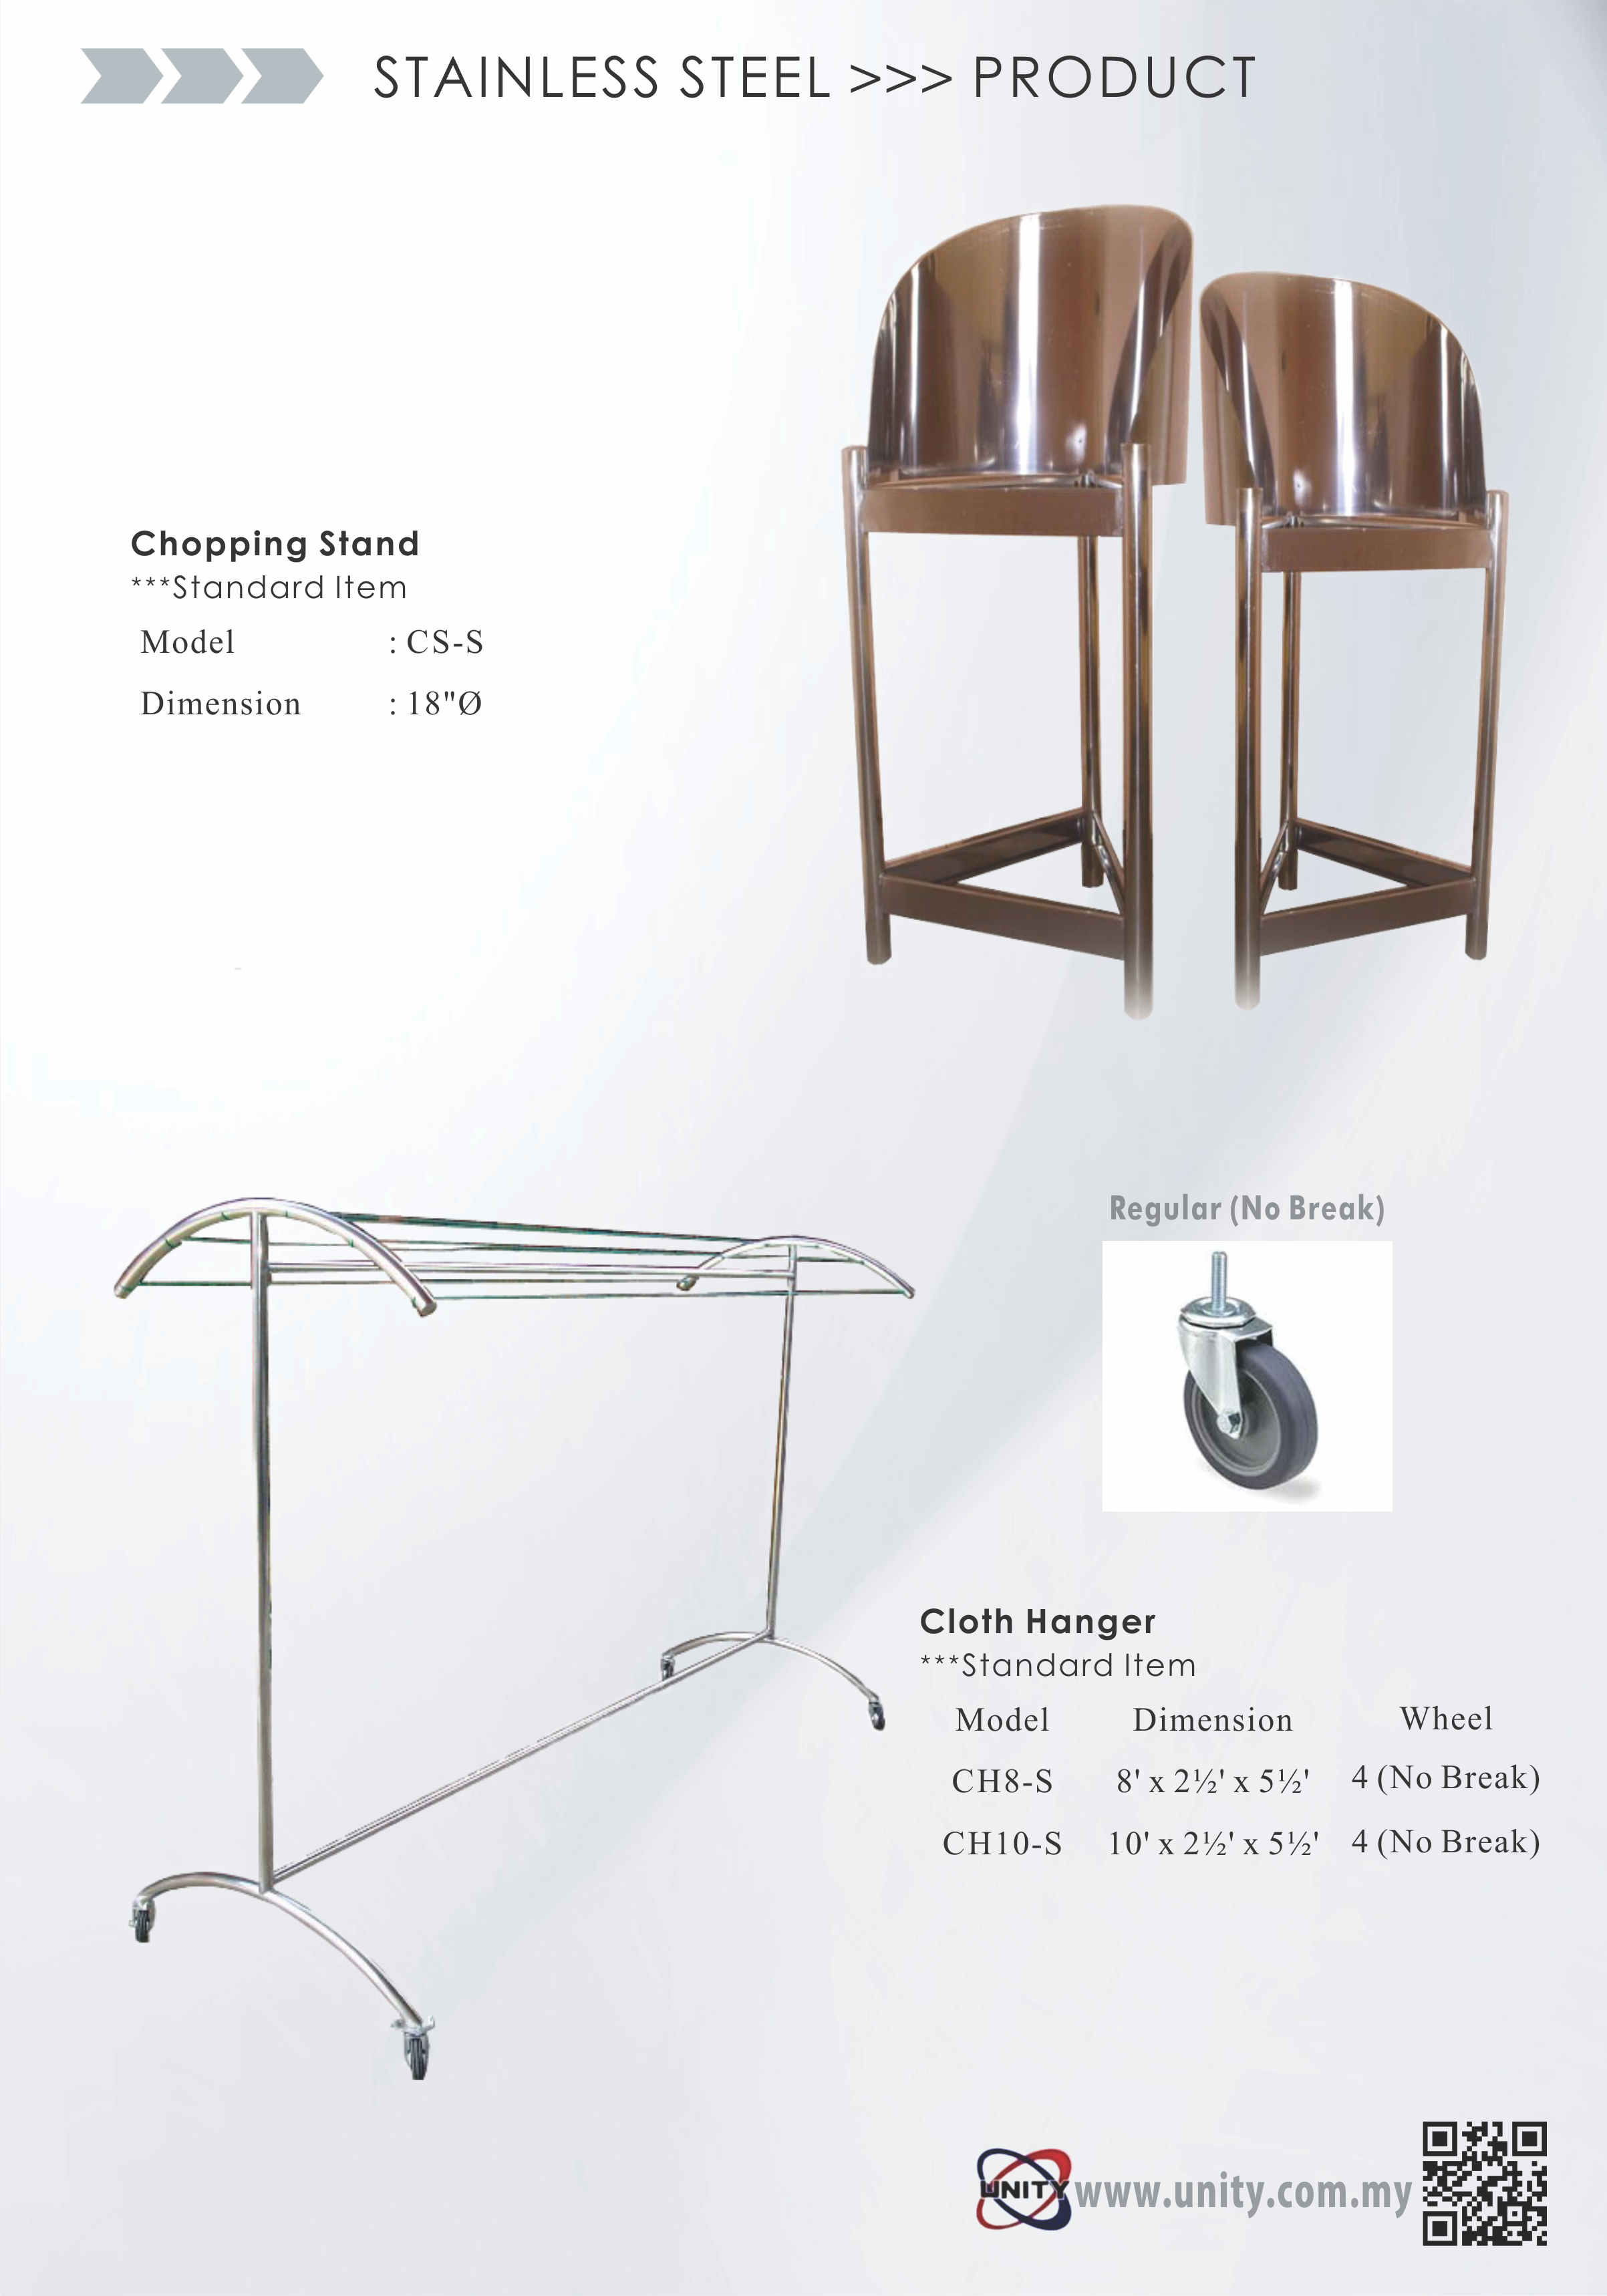 Chopping Stand & Cloth Hanger